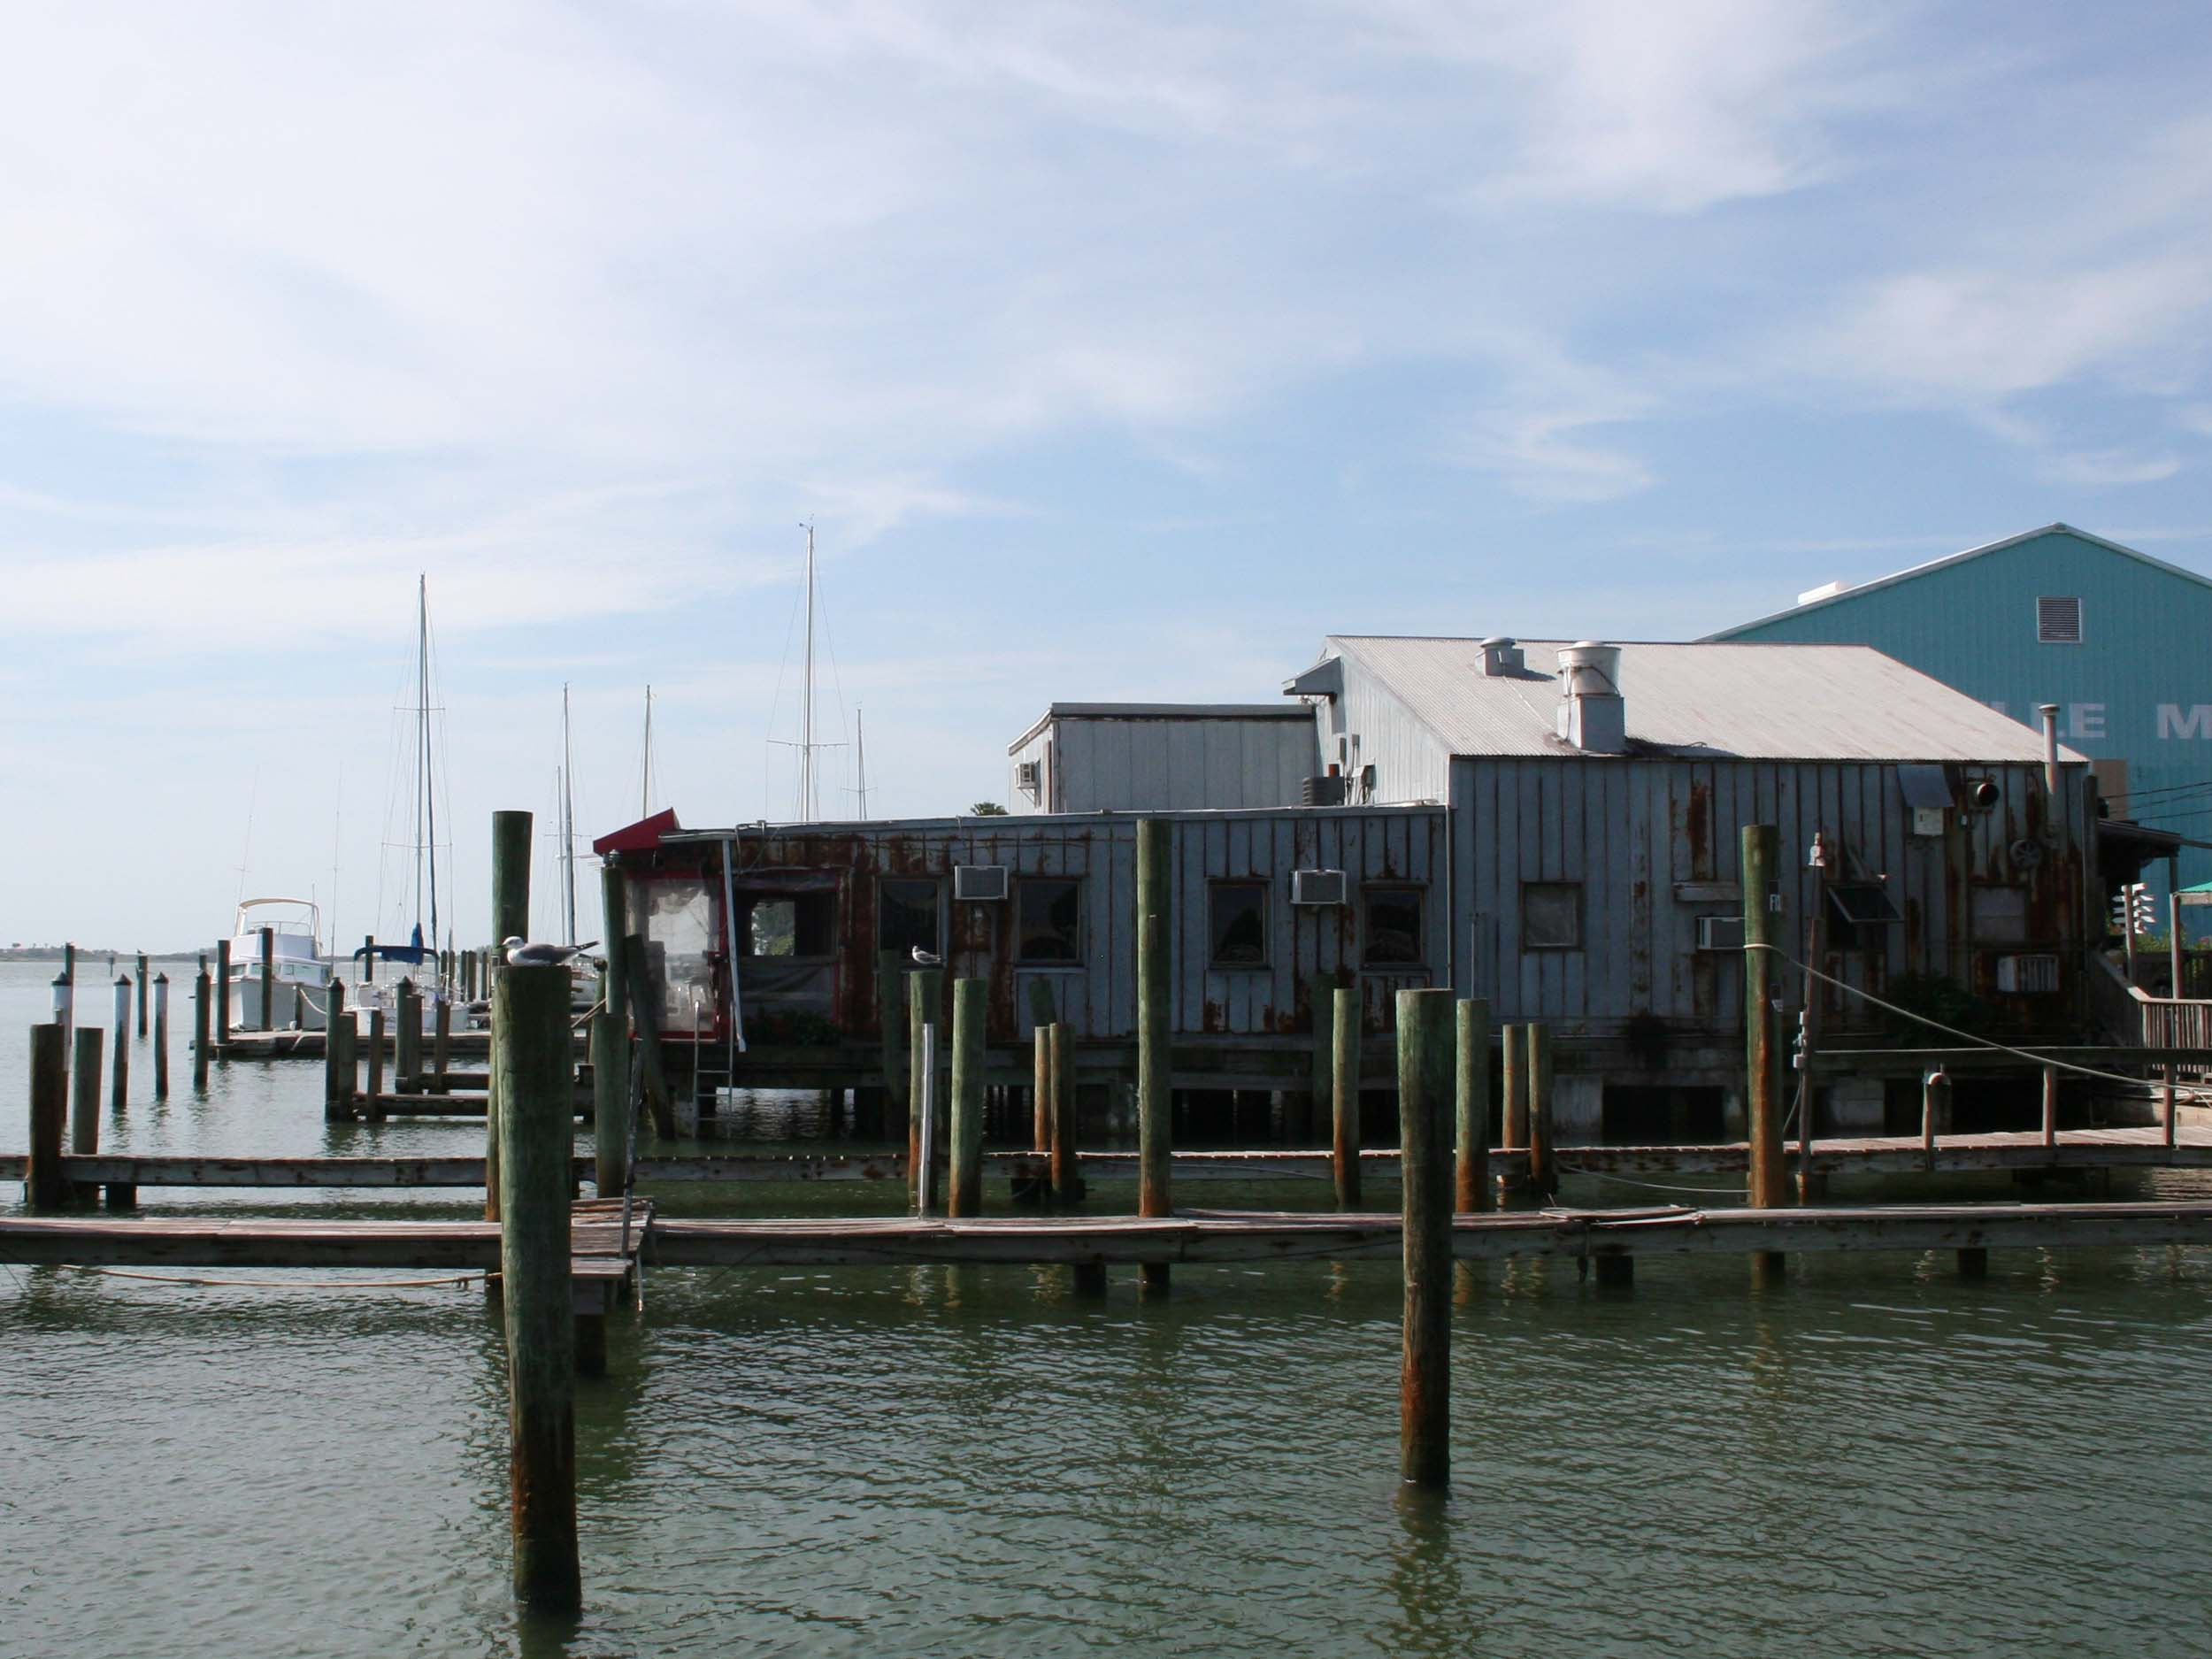 The Wharf Restaurant on the Water